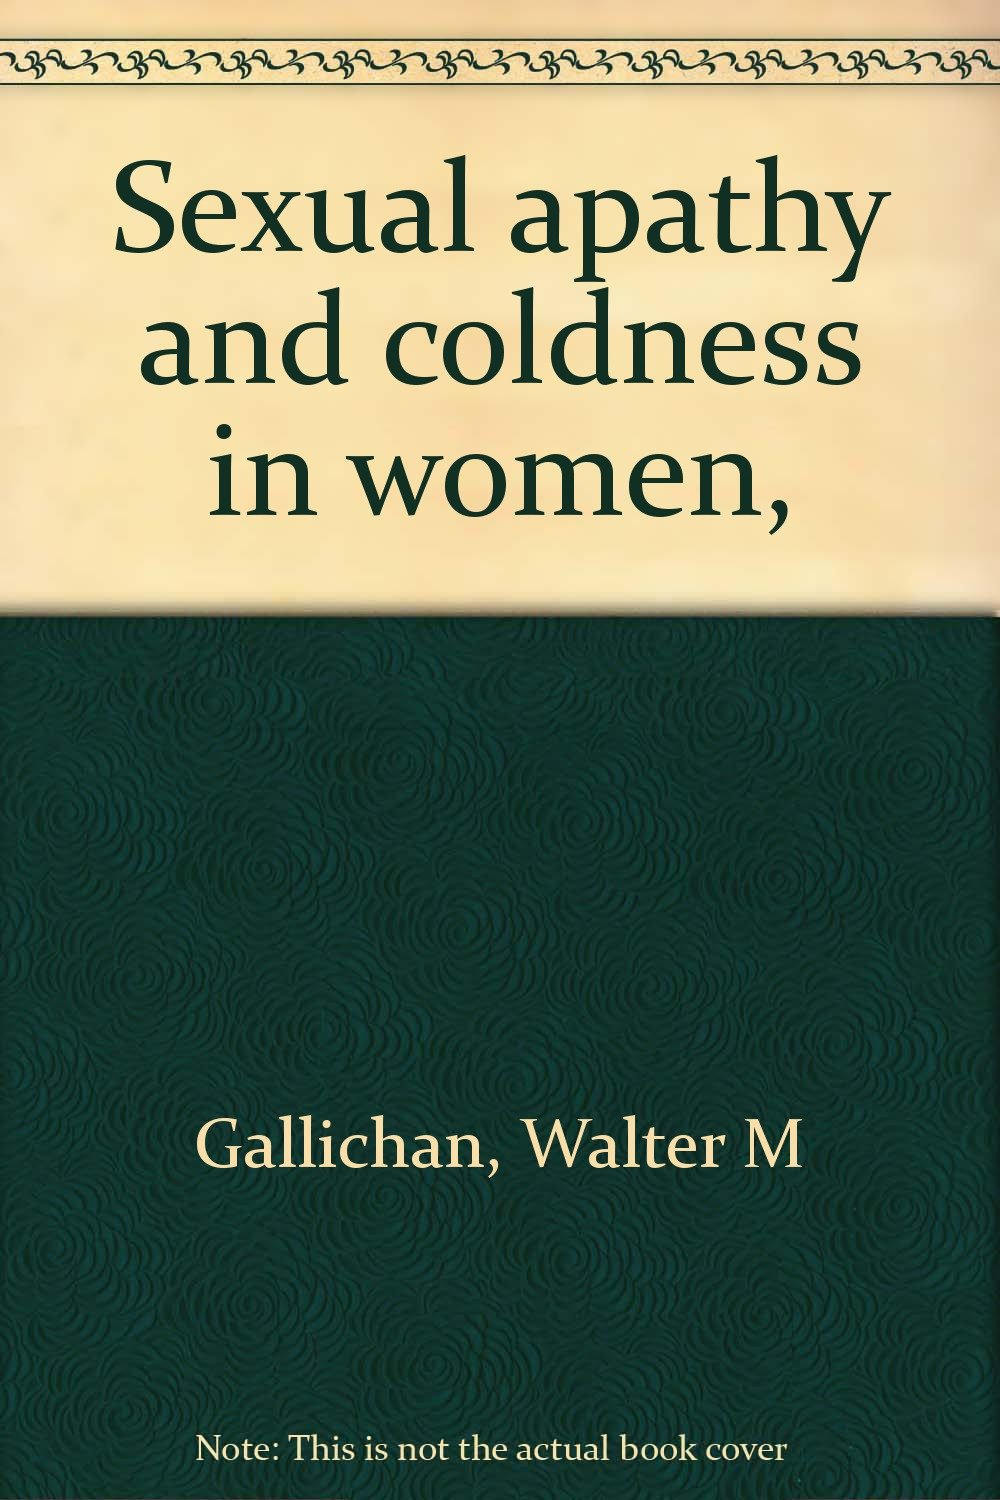 Sexual coldness 93